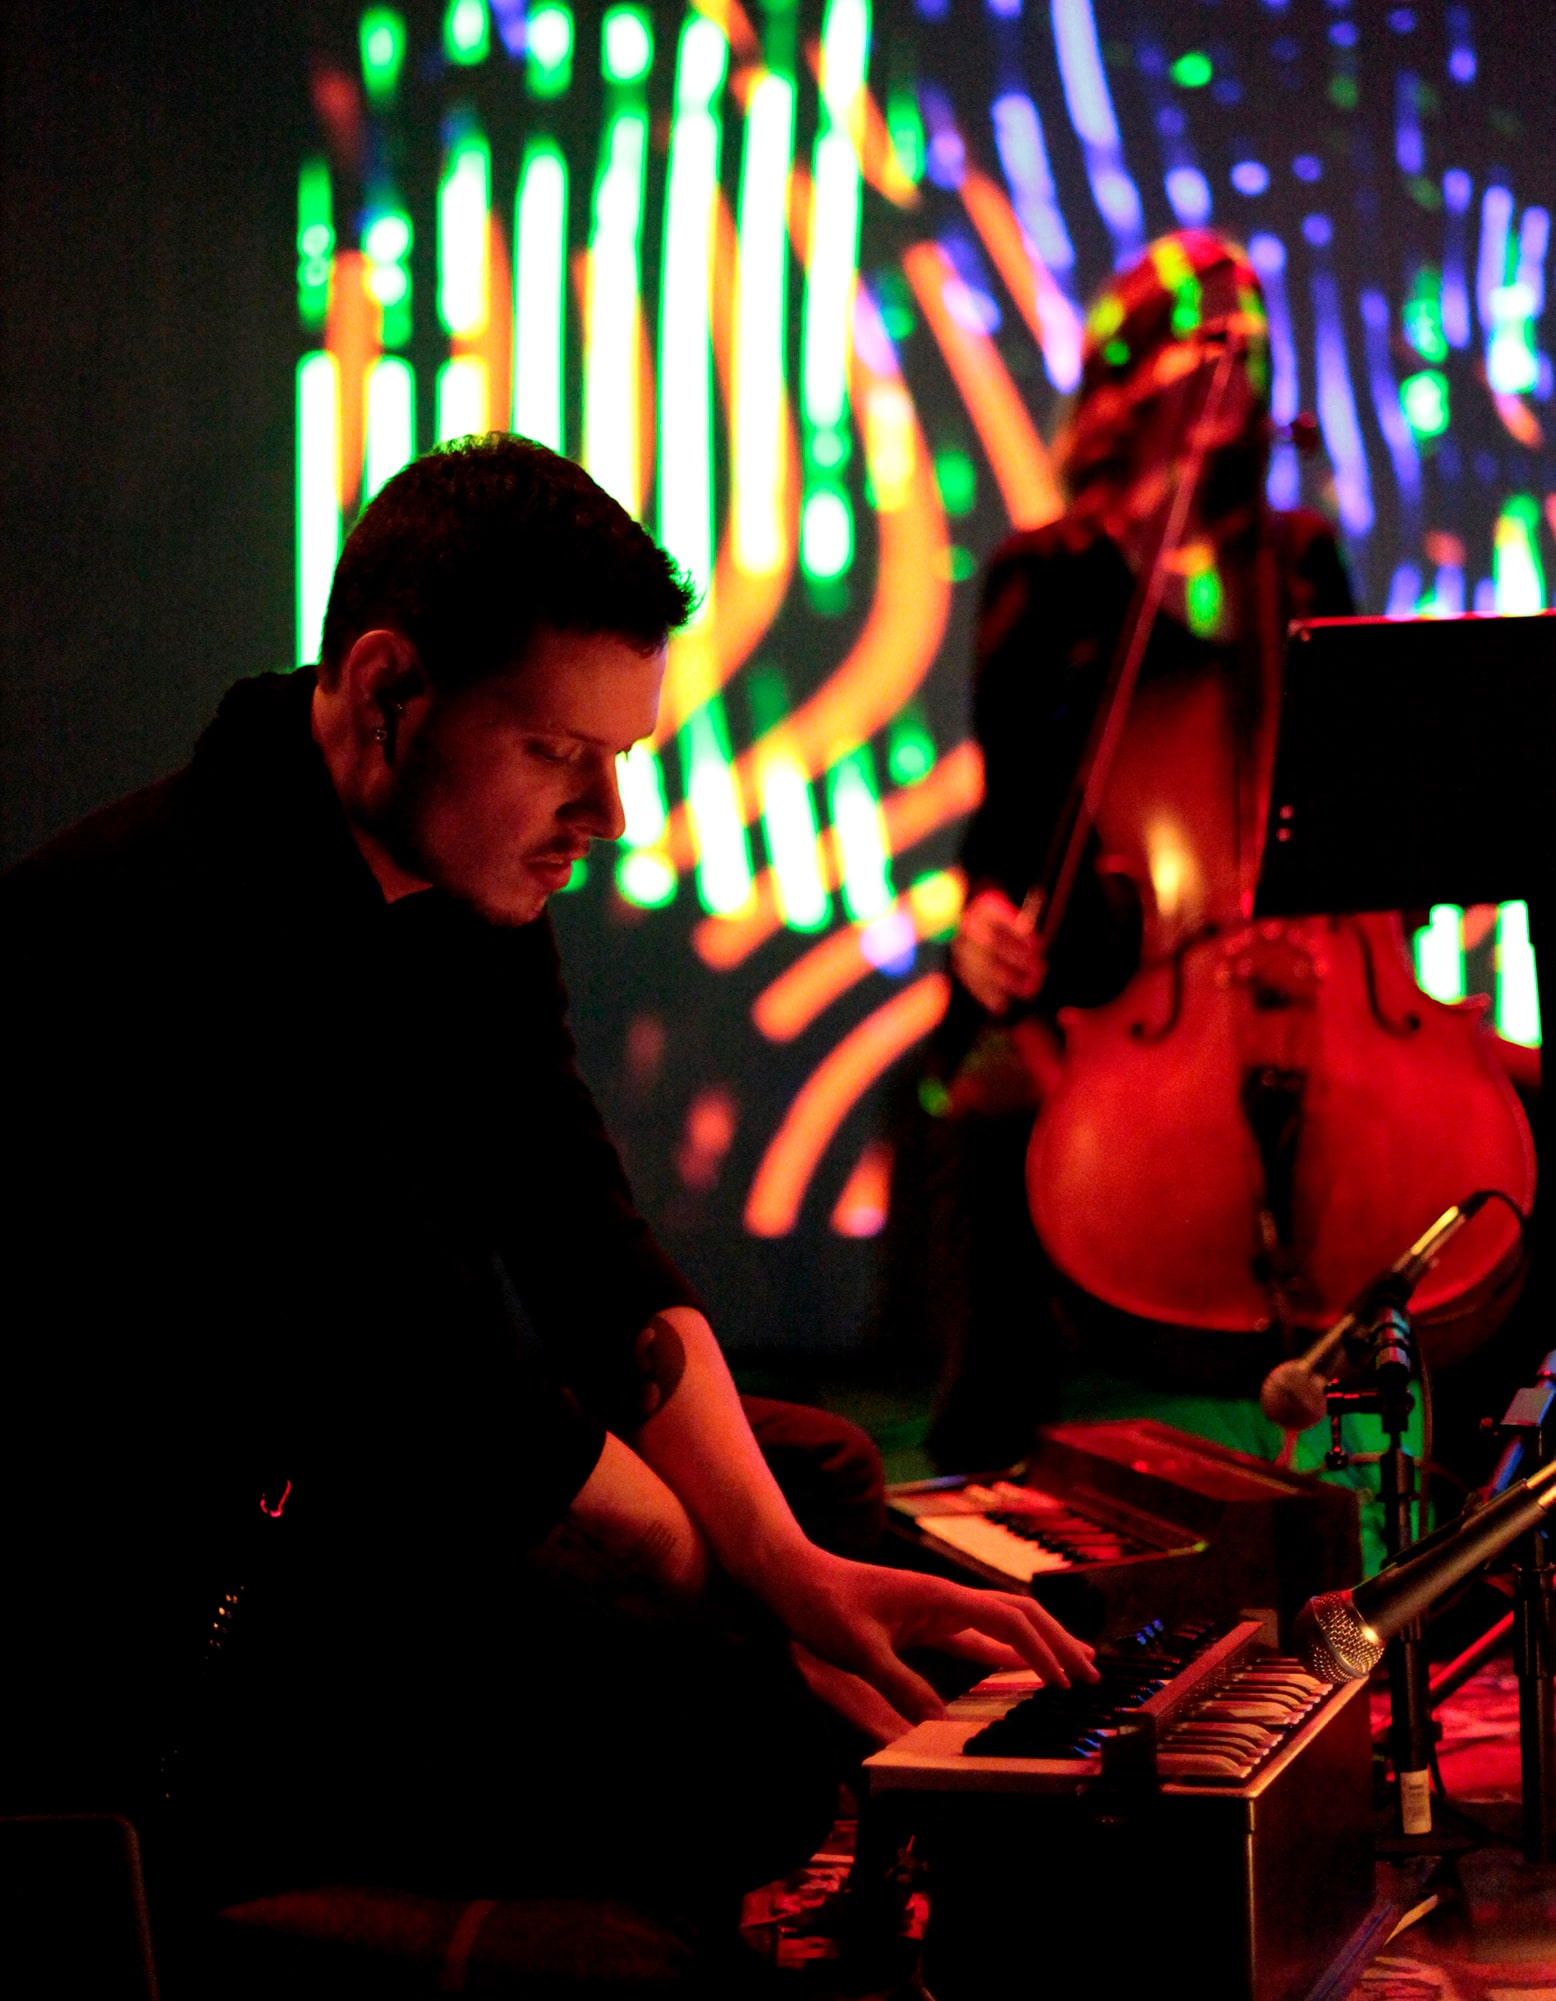 Randy Gibson performing <em>Apparitions of The Four Pillars with Their Lowest Additive Primes as limited to the 3rd, 7th, 9th, and 11th New Primes chosen Cyclically, The Toll of Premonition, The Memorial Connector over the Outlying Primal Abyss, and The Mid-Winter Ending</em> at the 2011 Avant Music Festival